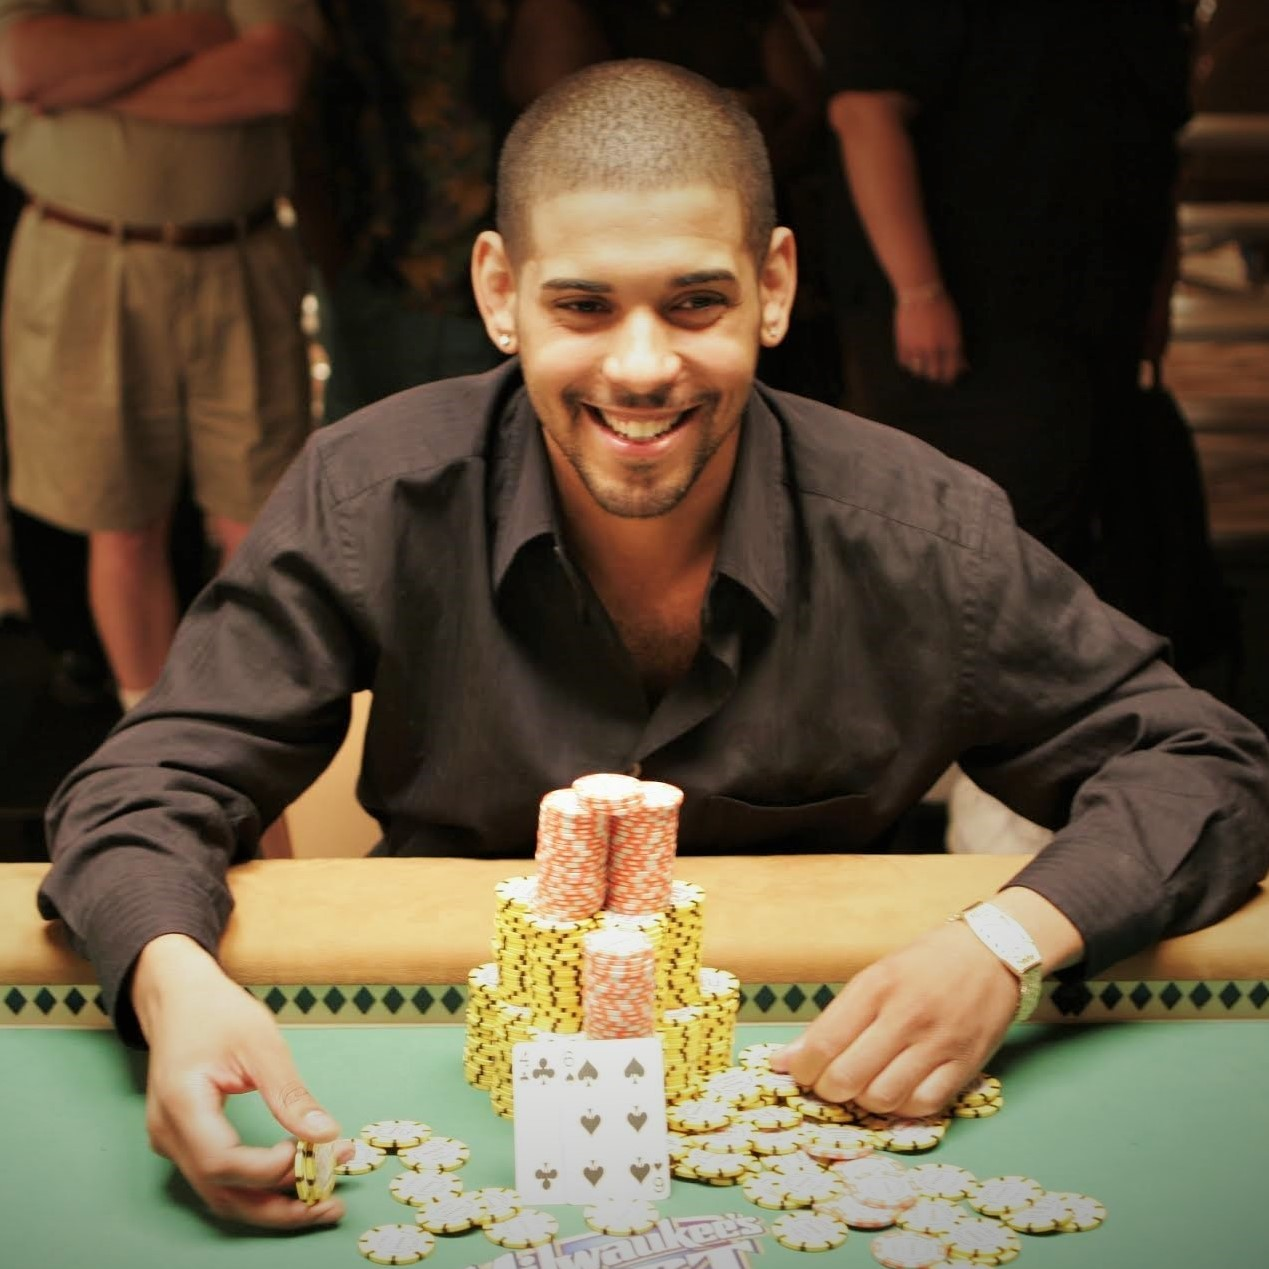 The list of pros coming to the event just keeps growing! David Williams will be joining us at Majestic Star Casino!